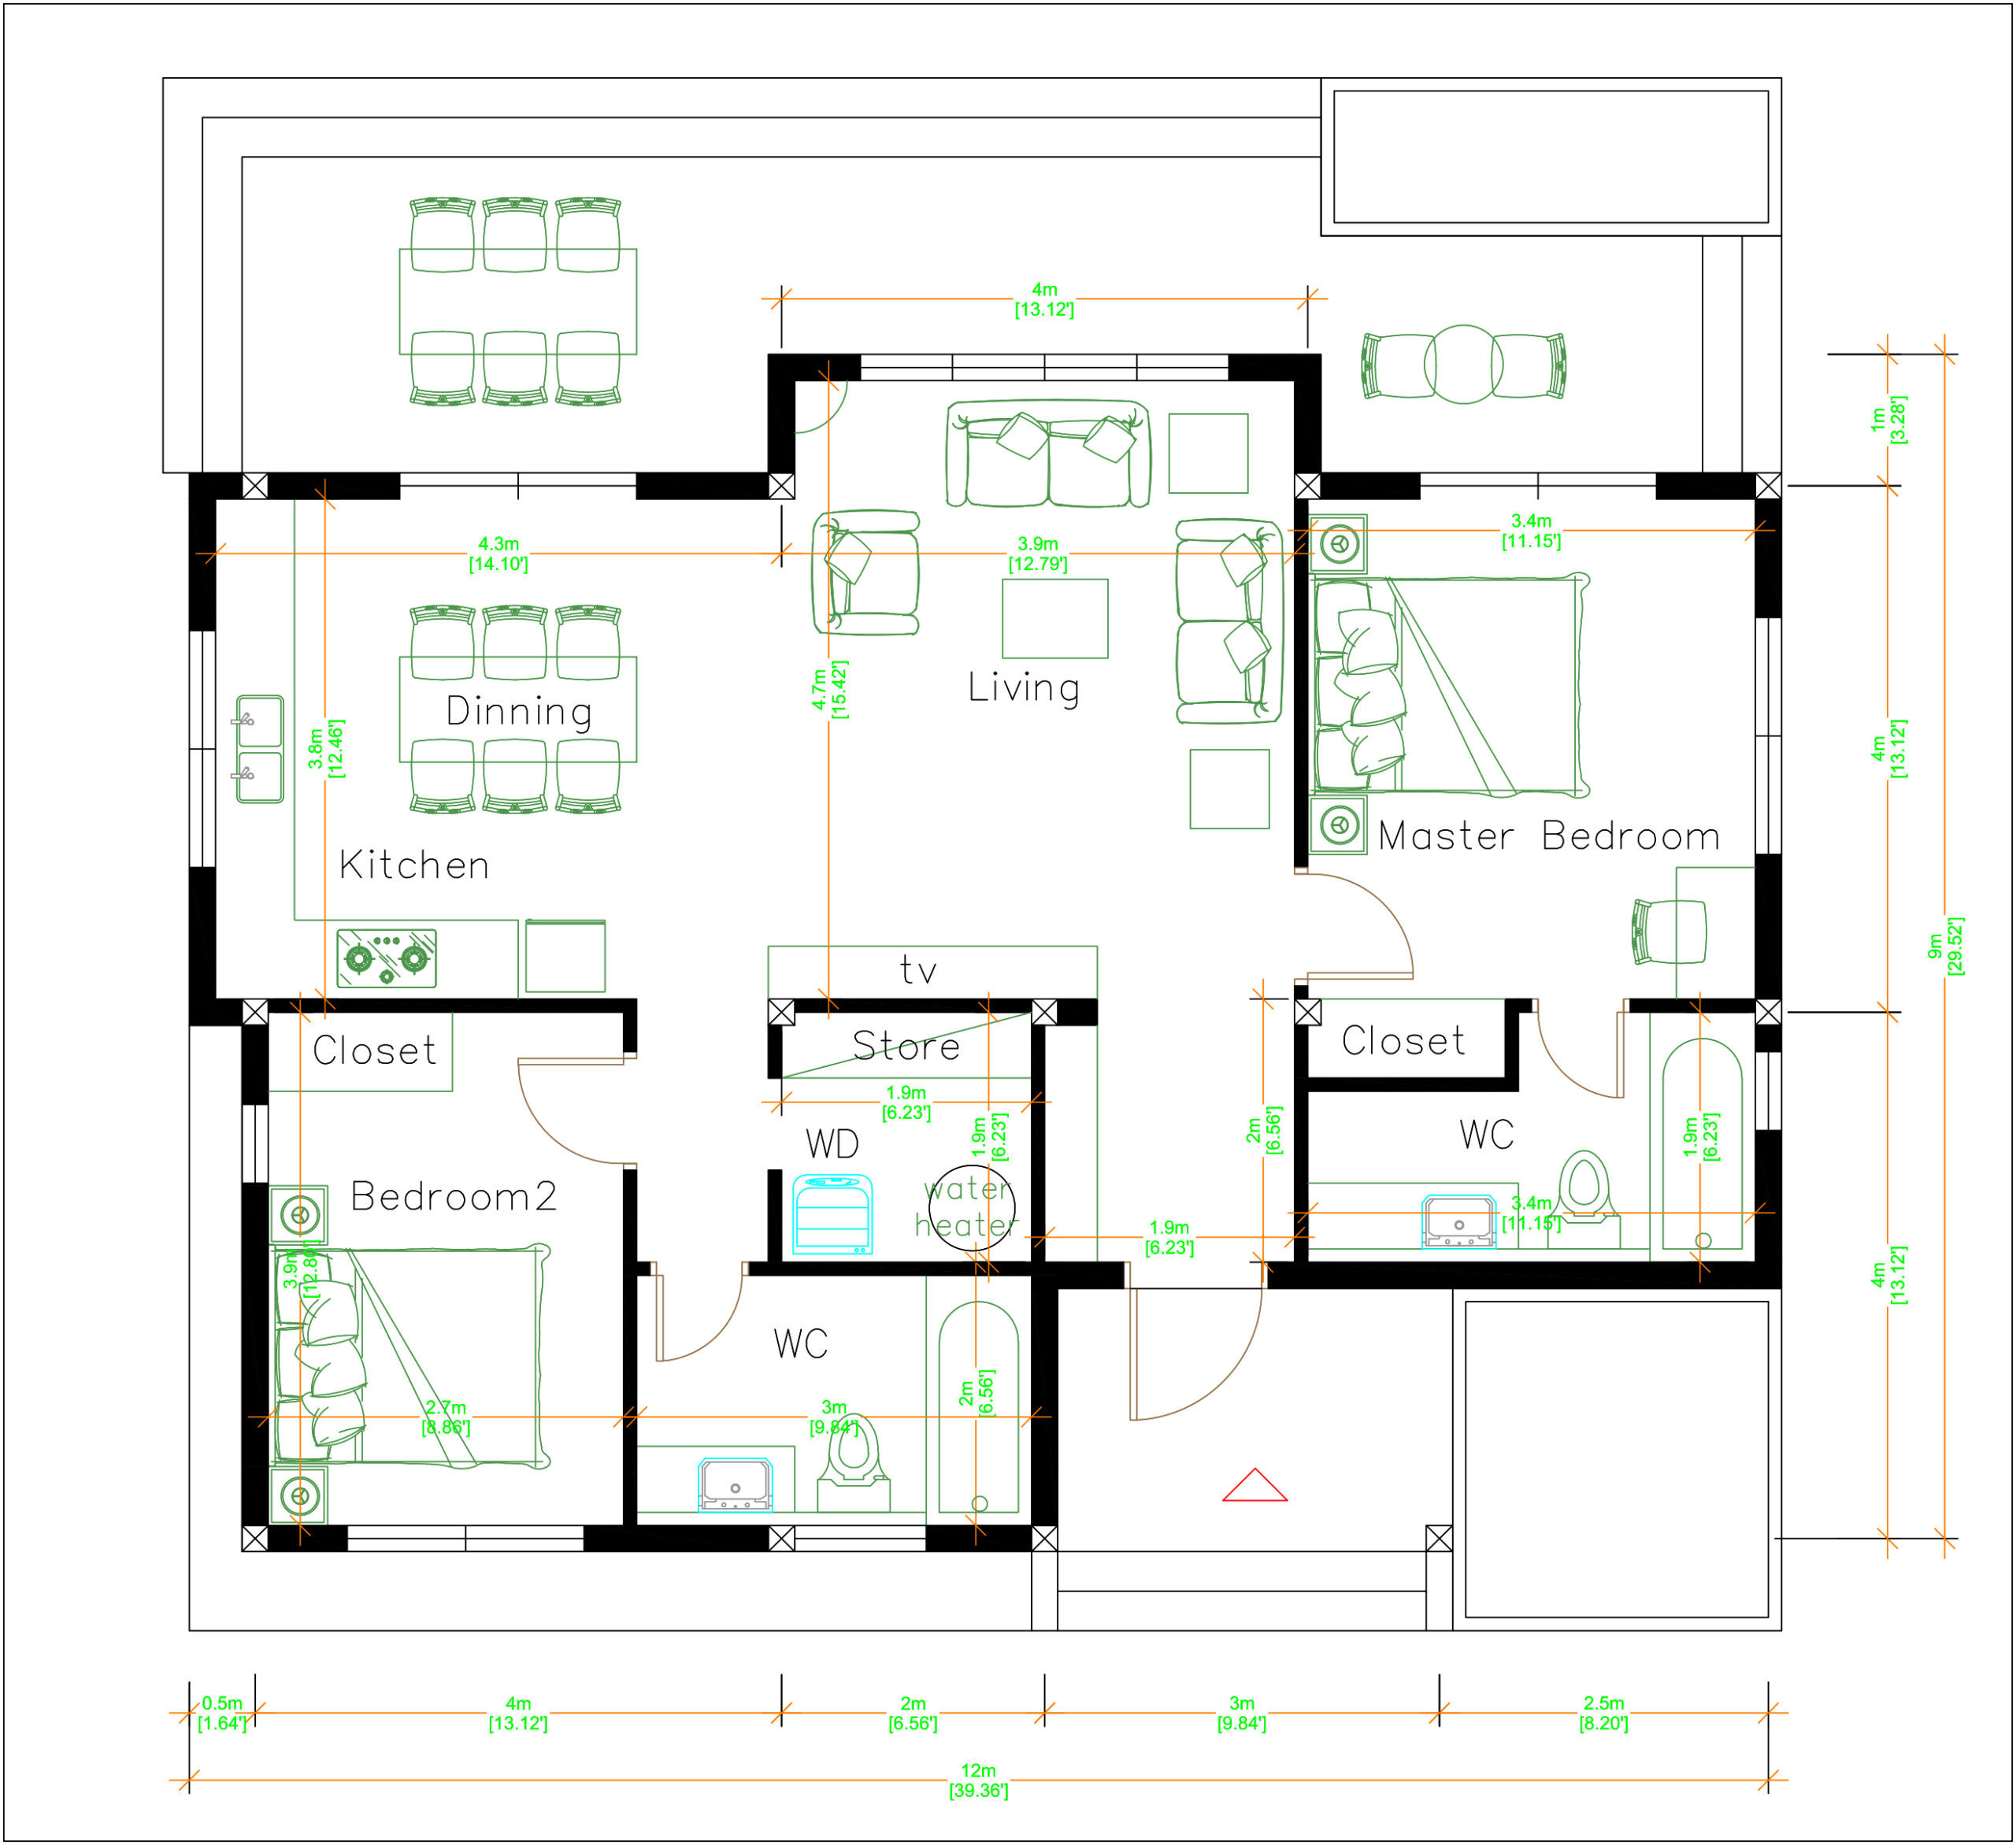 Online House Design 12x9 Meter 40x30 Feet 2 Beds Layout floor plan